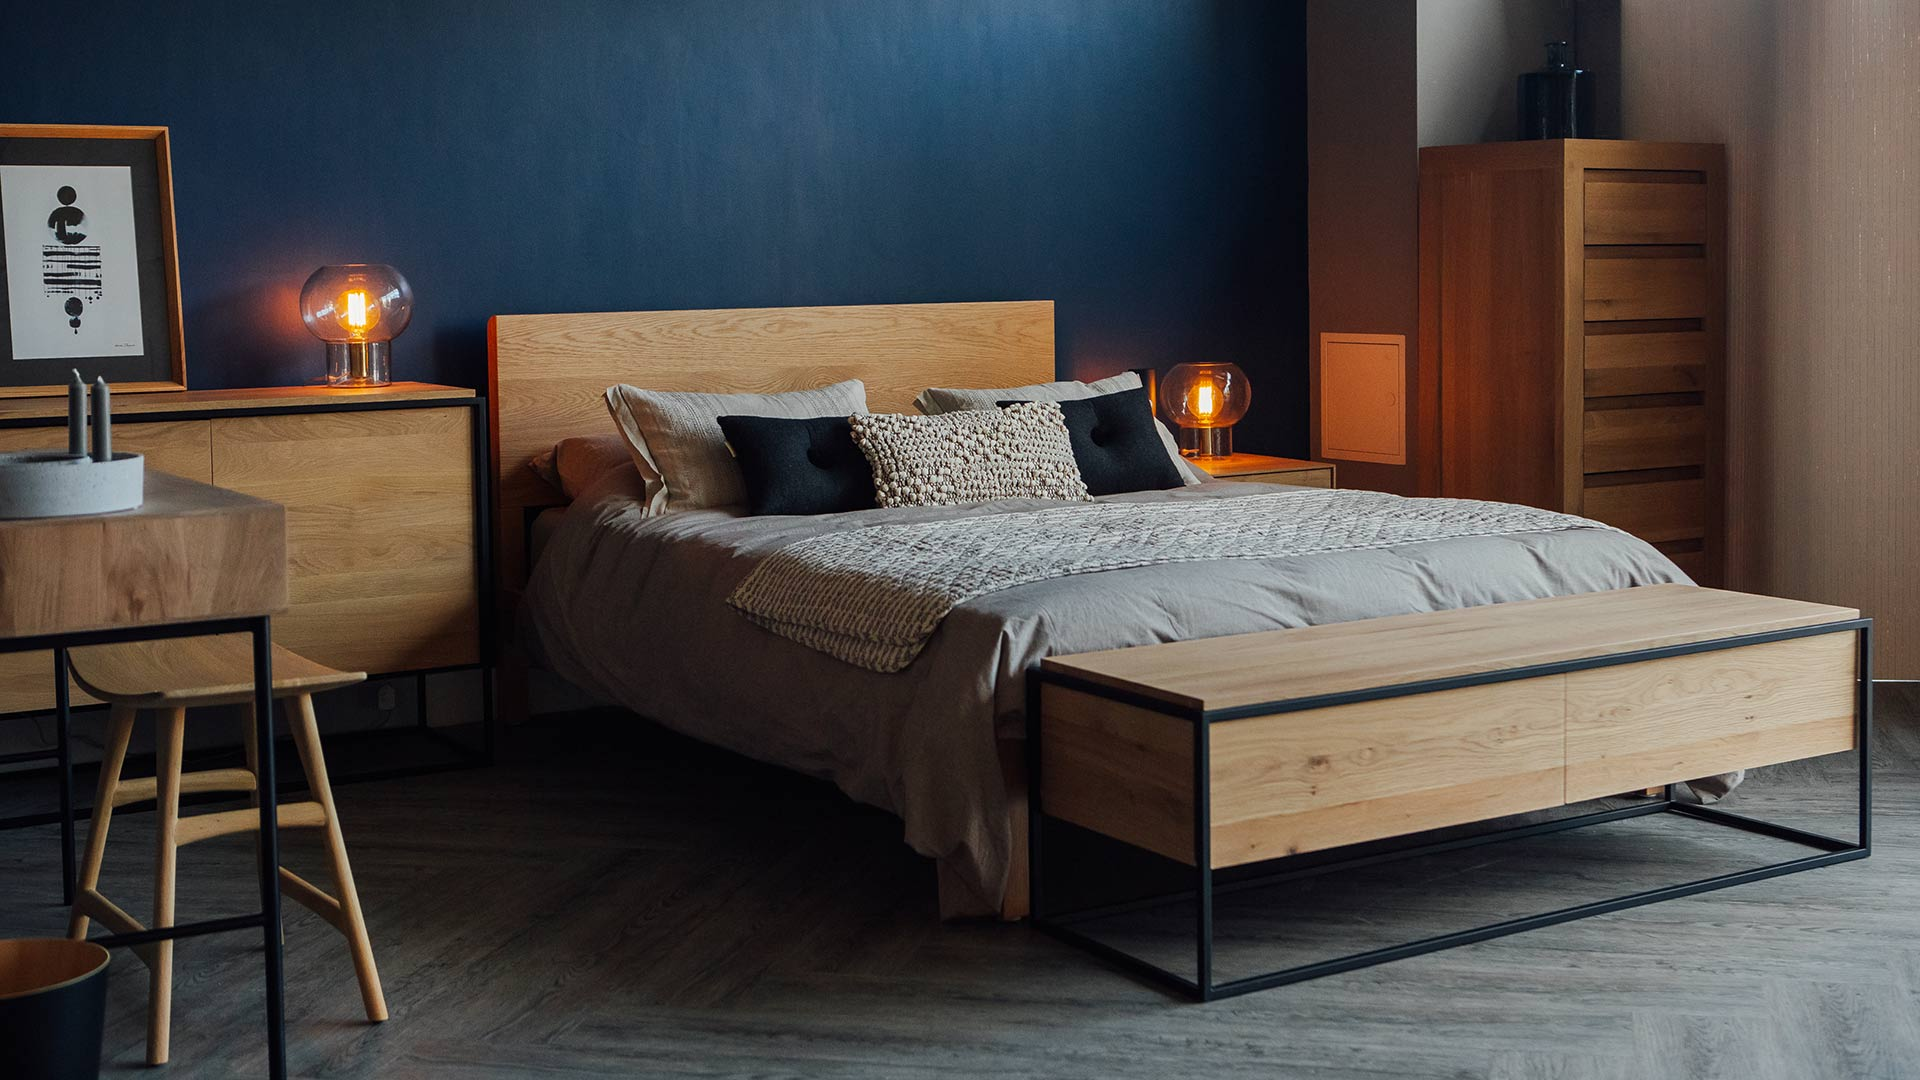 Our hand made Malabar bed in Oak shown with Ethnicraft Monolit storage furniture